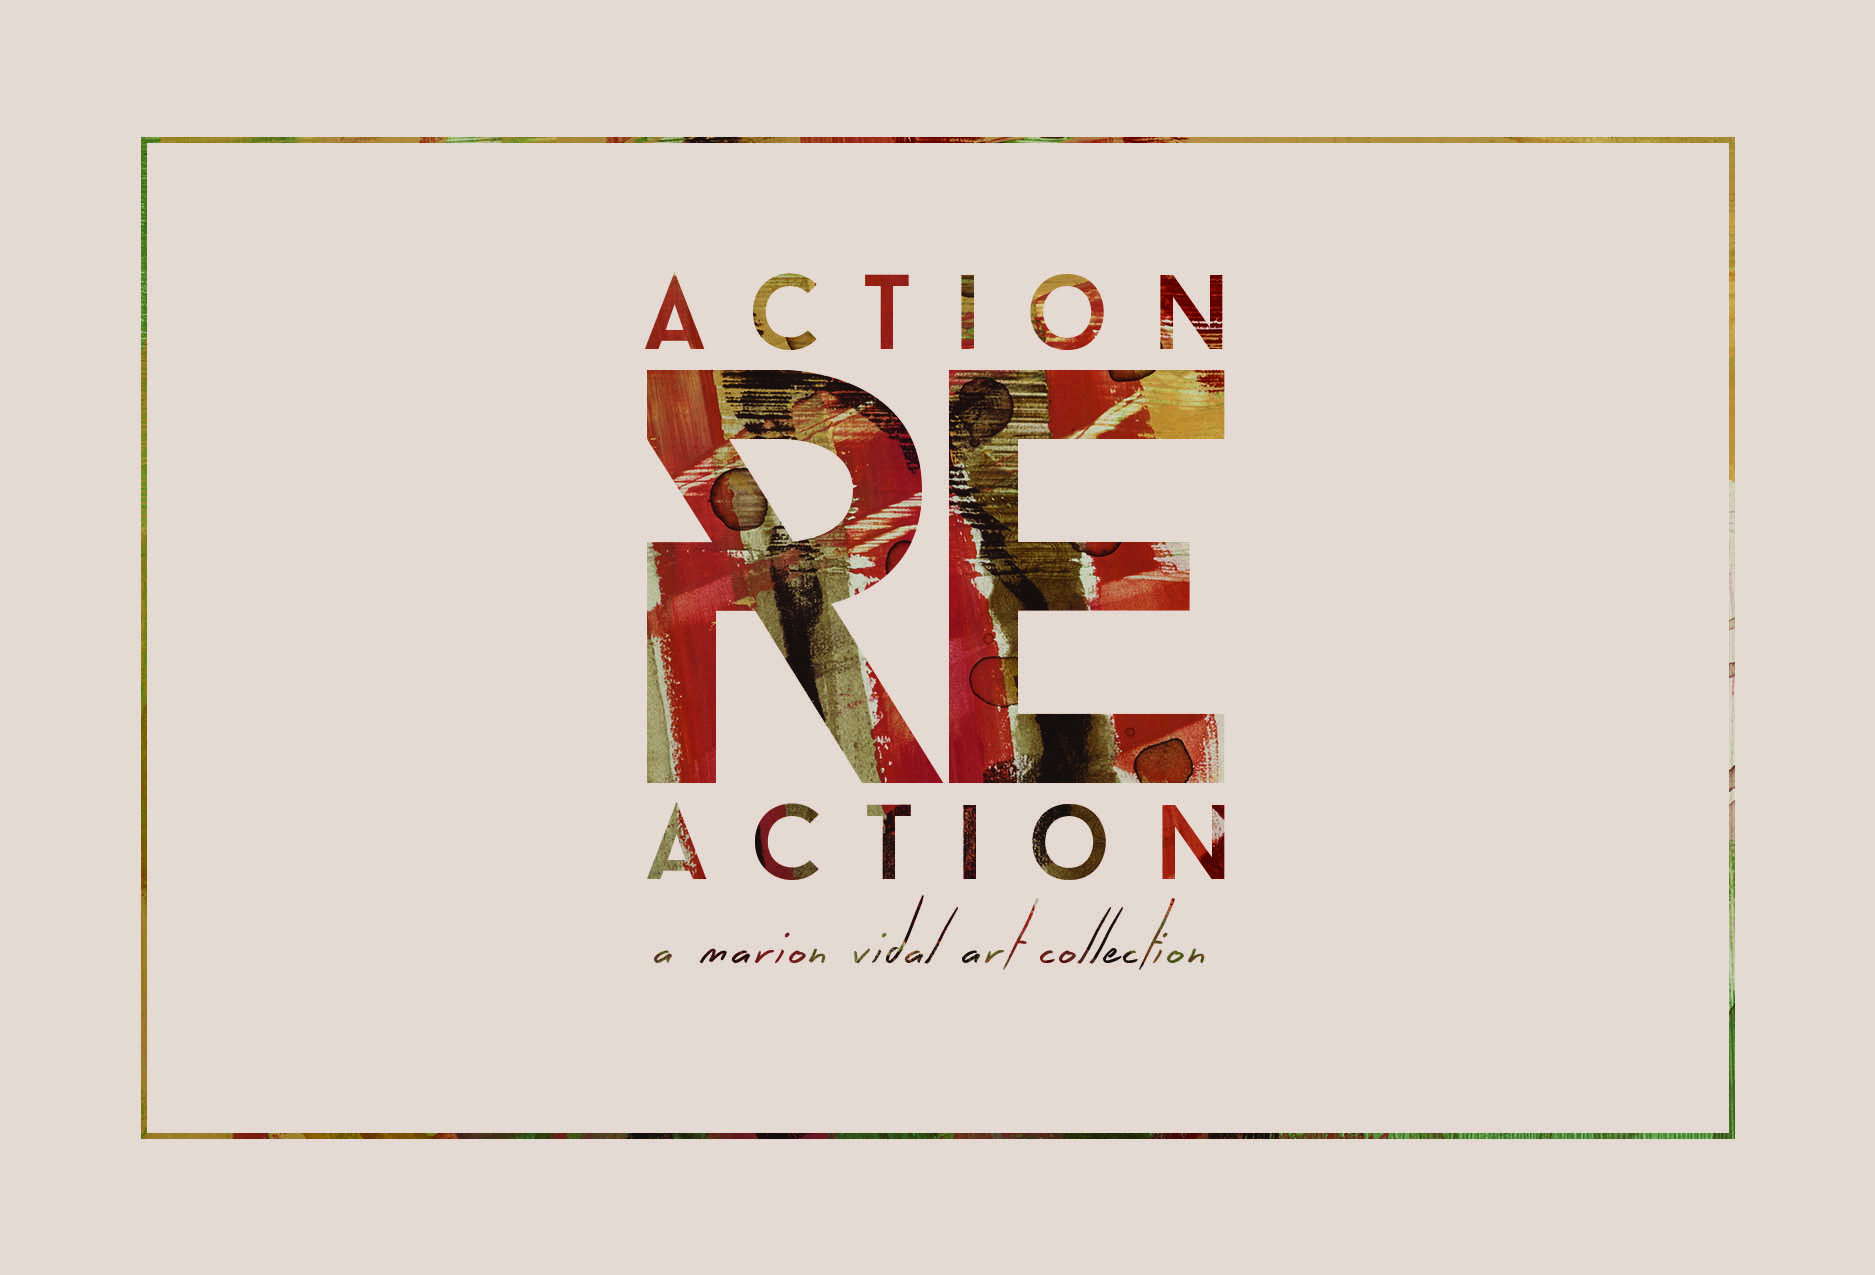 ActionReaction_4x6flyer-Front.jpg